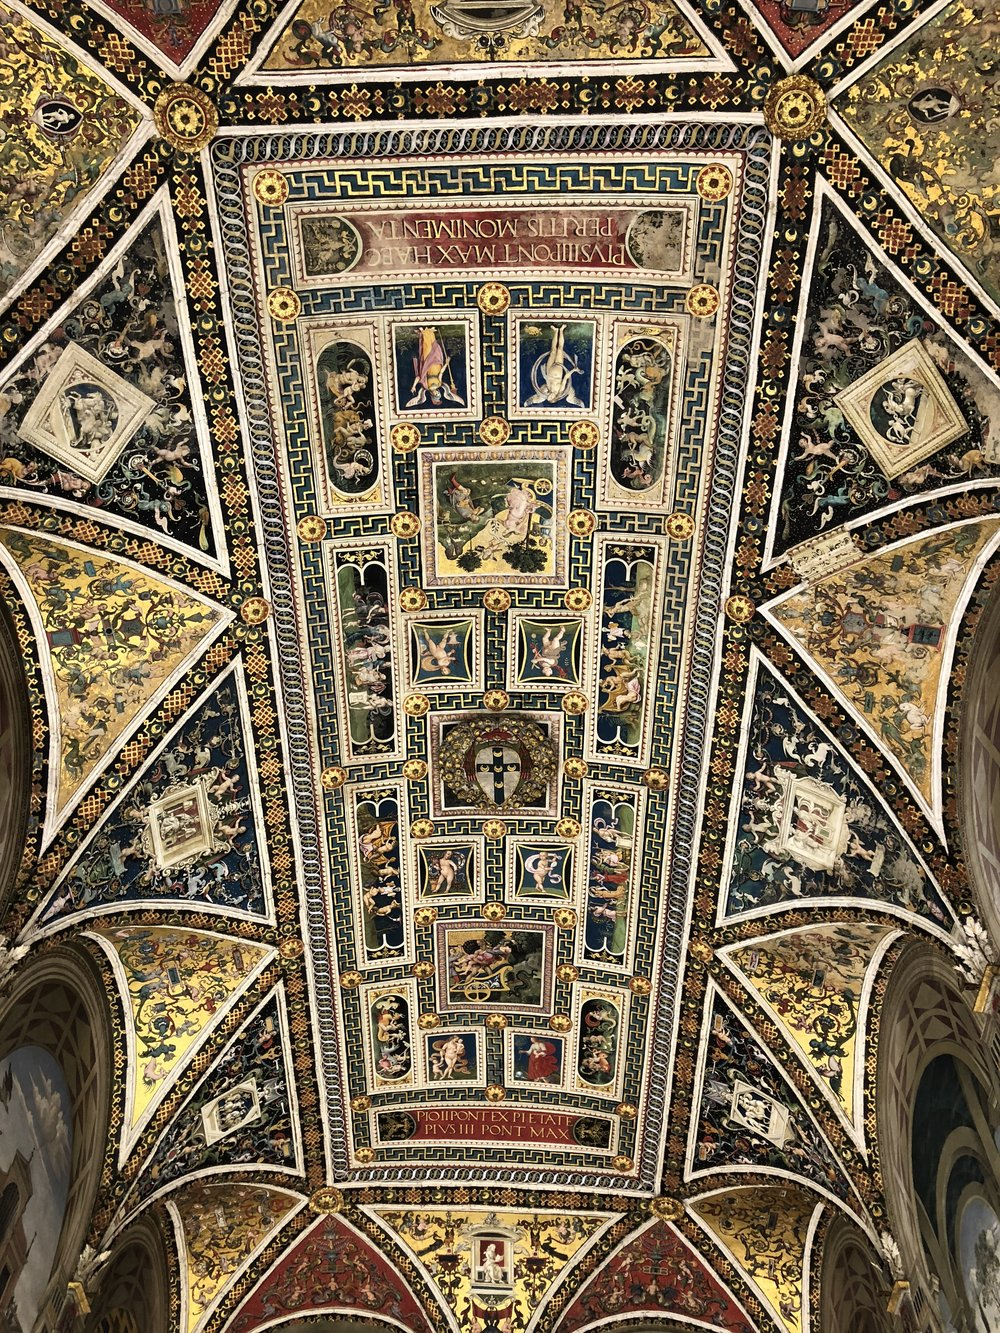 Ceiling of the Piccolomini Library, located inside the Cathedral